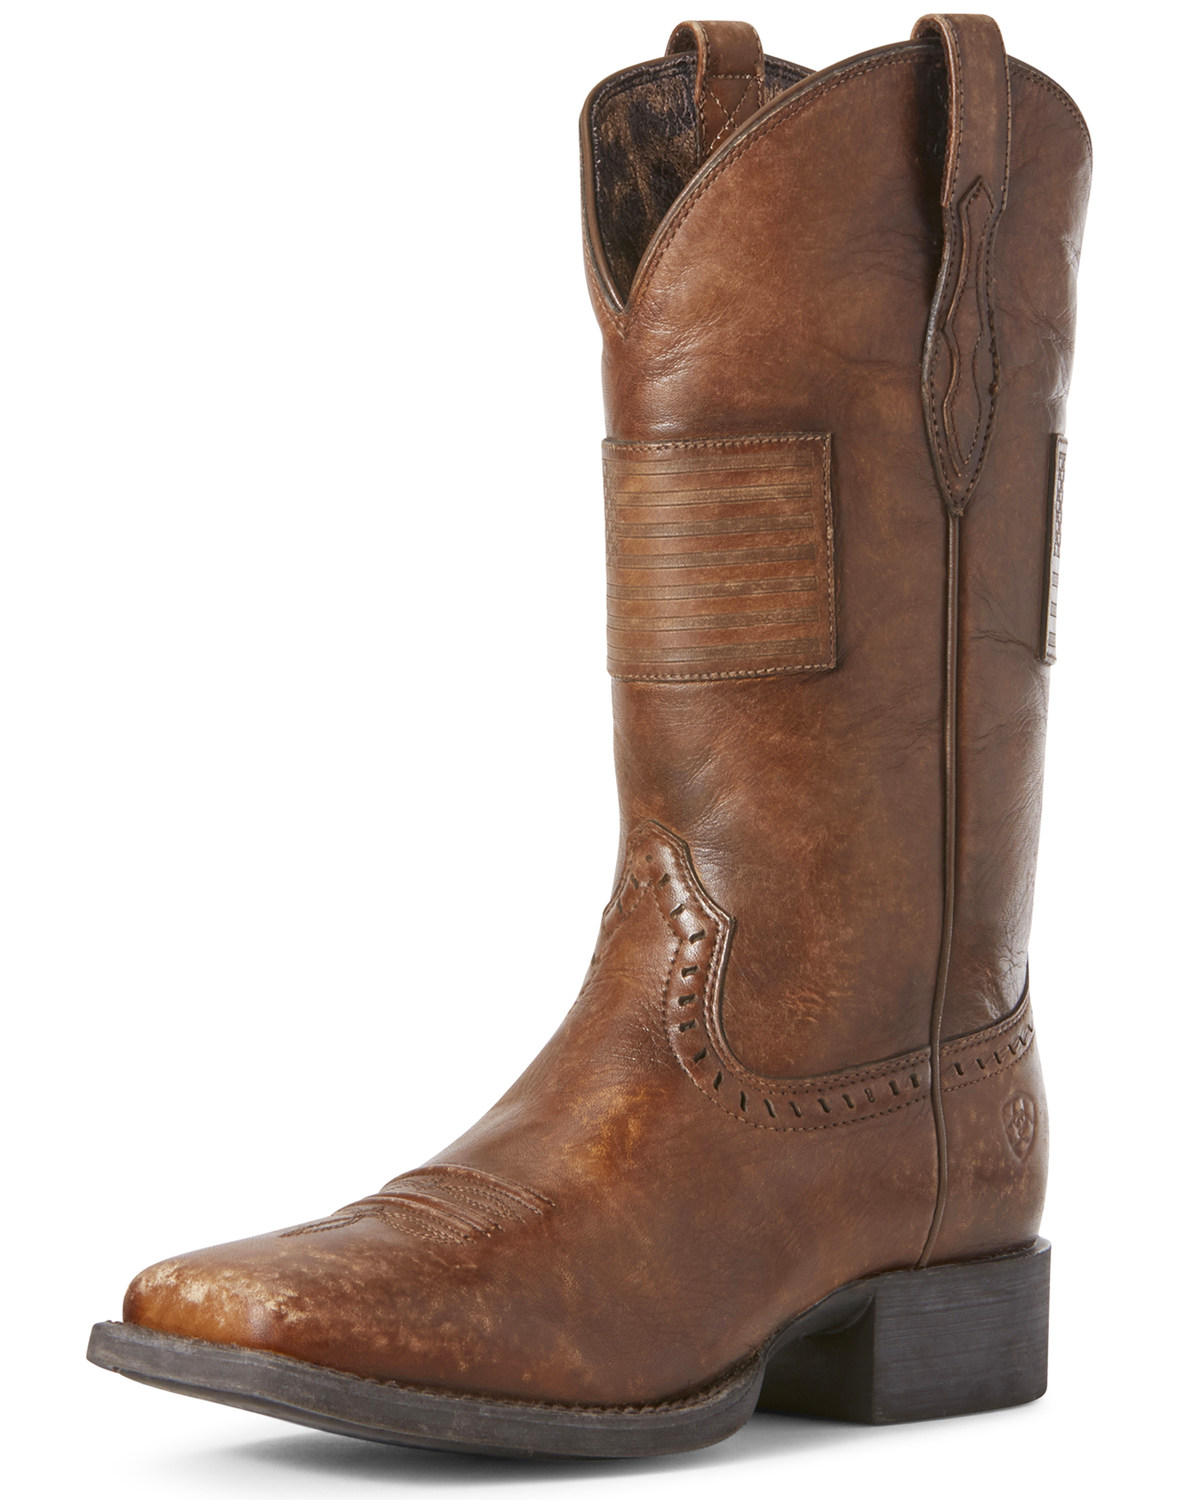 04de9ff52ac Ariat Women's Round Up Patriot Western Boots - Wide Square Toe